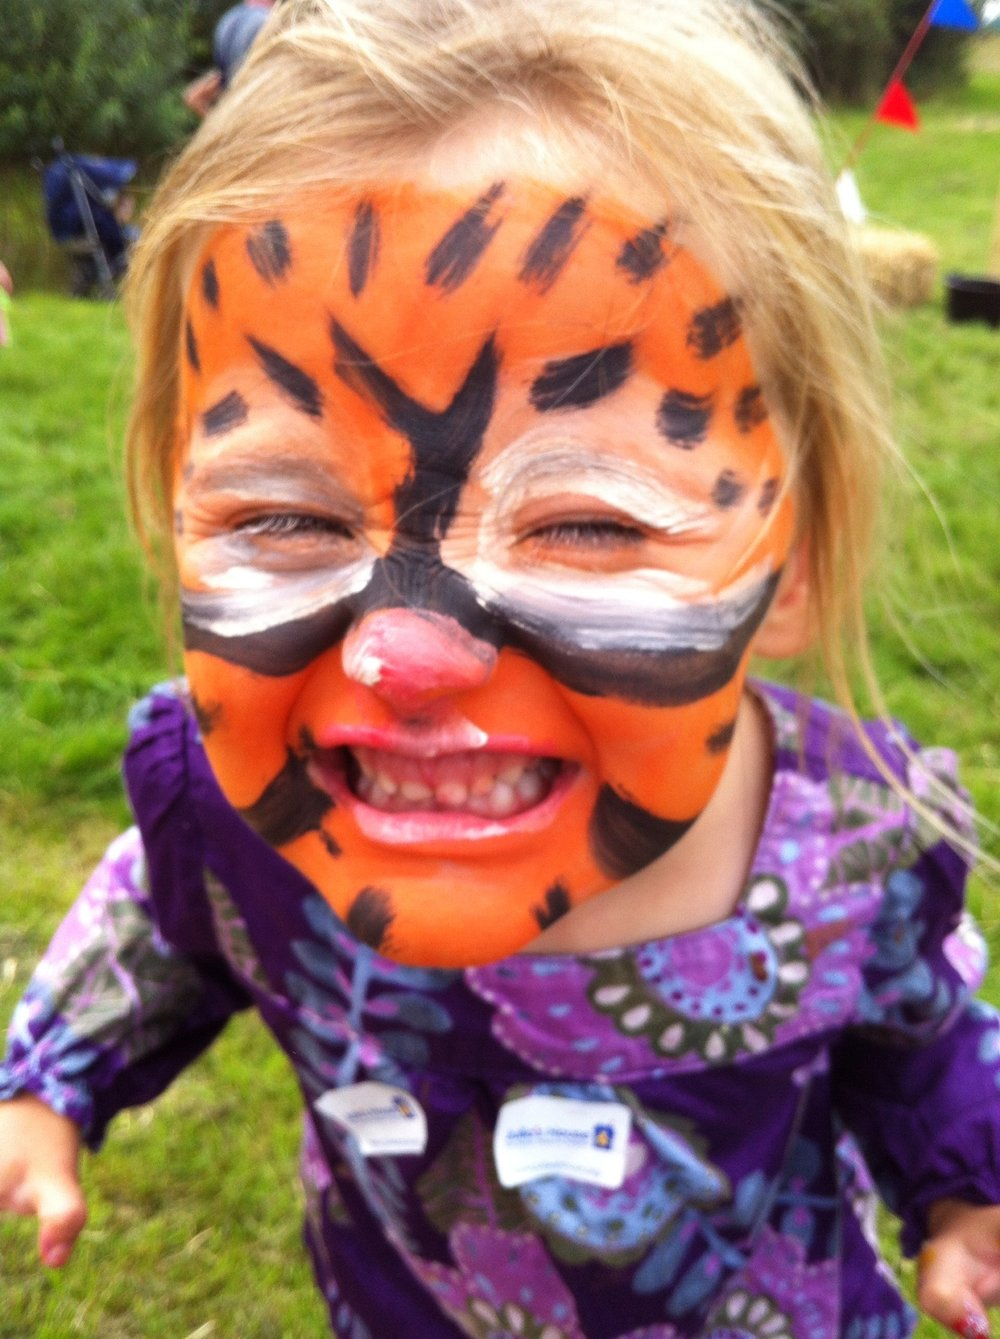 Partyfield Dorset childrens party face painting 4 .jpg